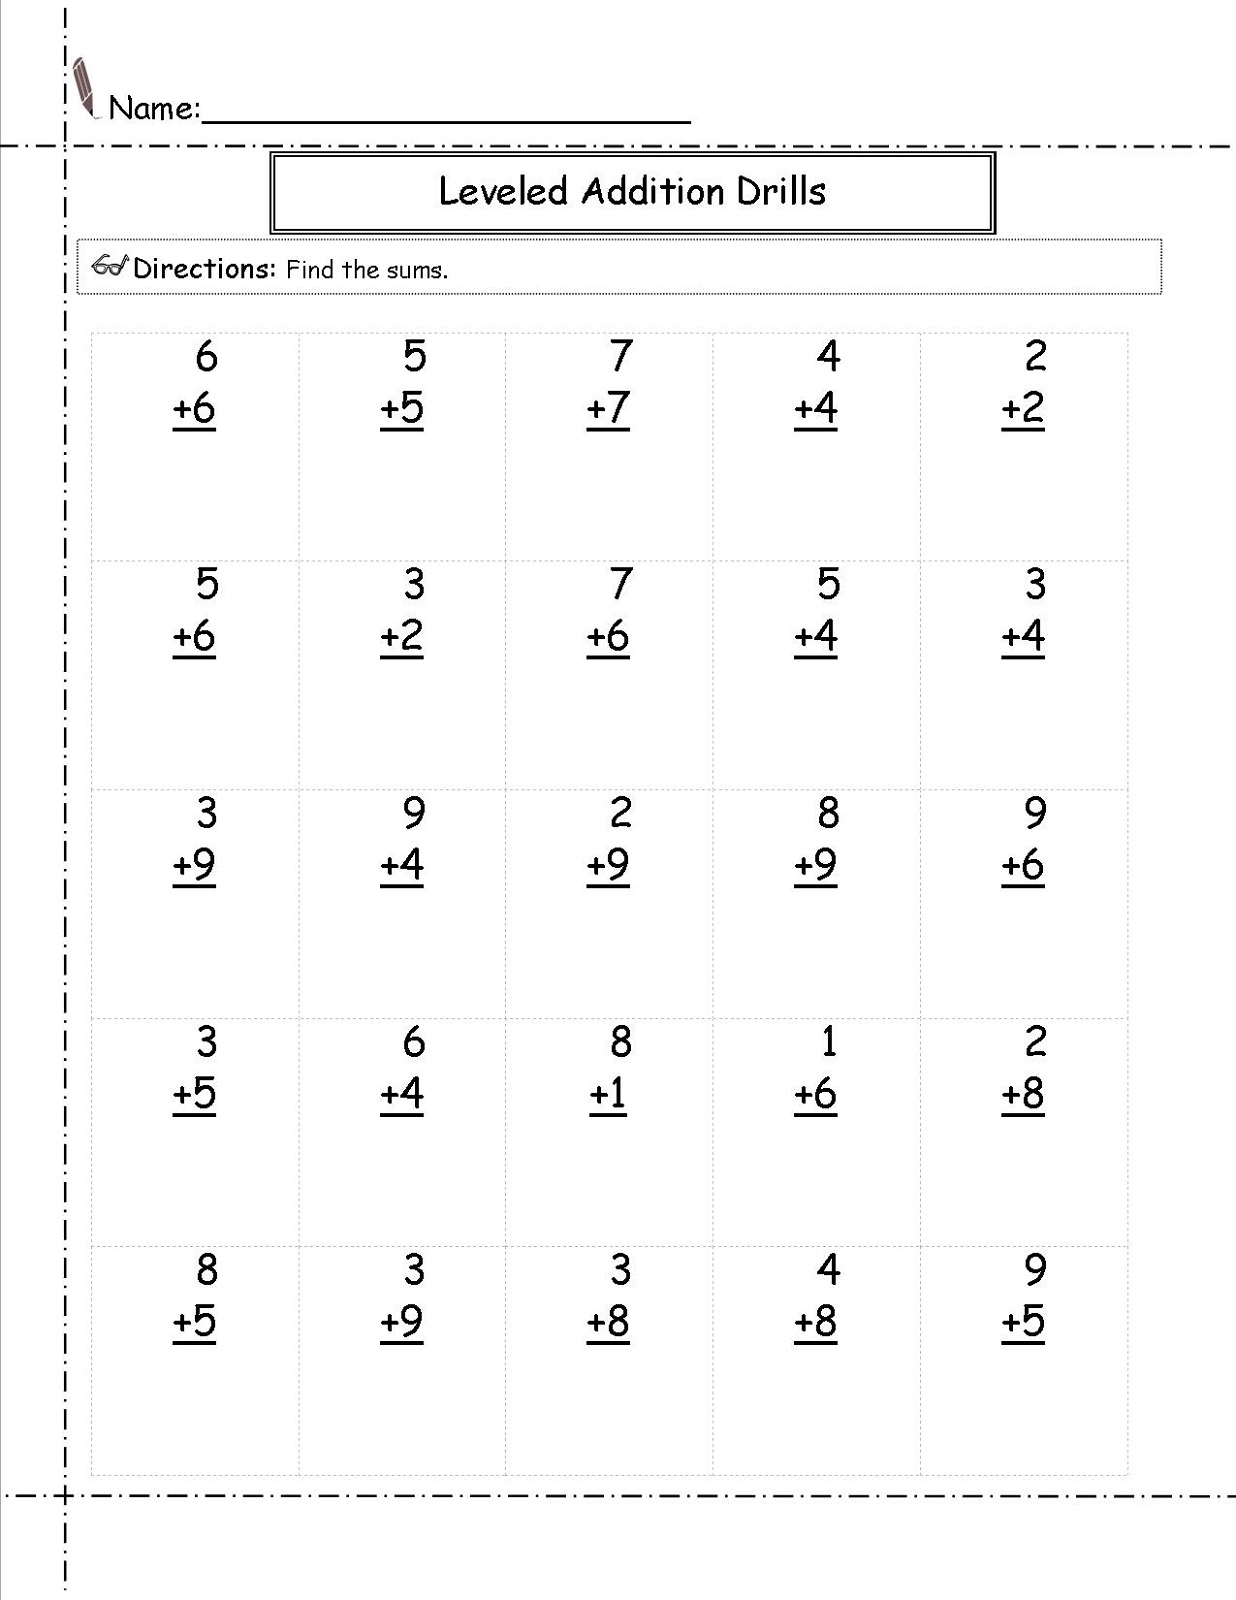 Printable addition worksheets for year 1